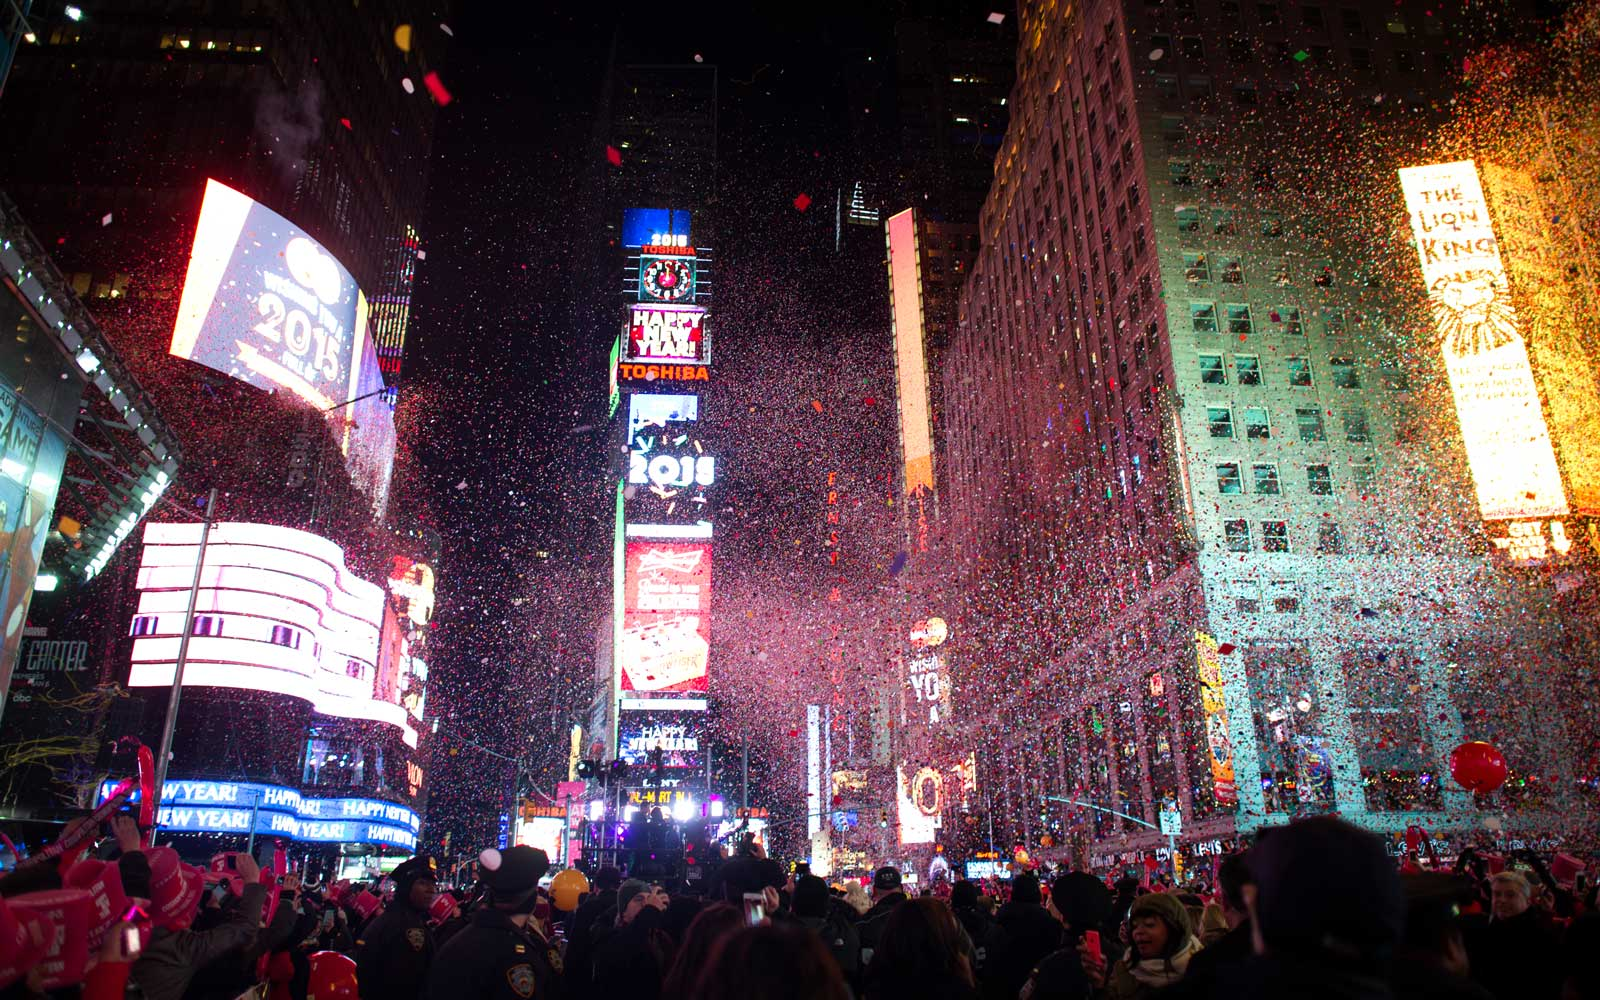 How to Plan a Last Minute Trip to New York City for New Year's Eve